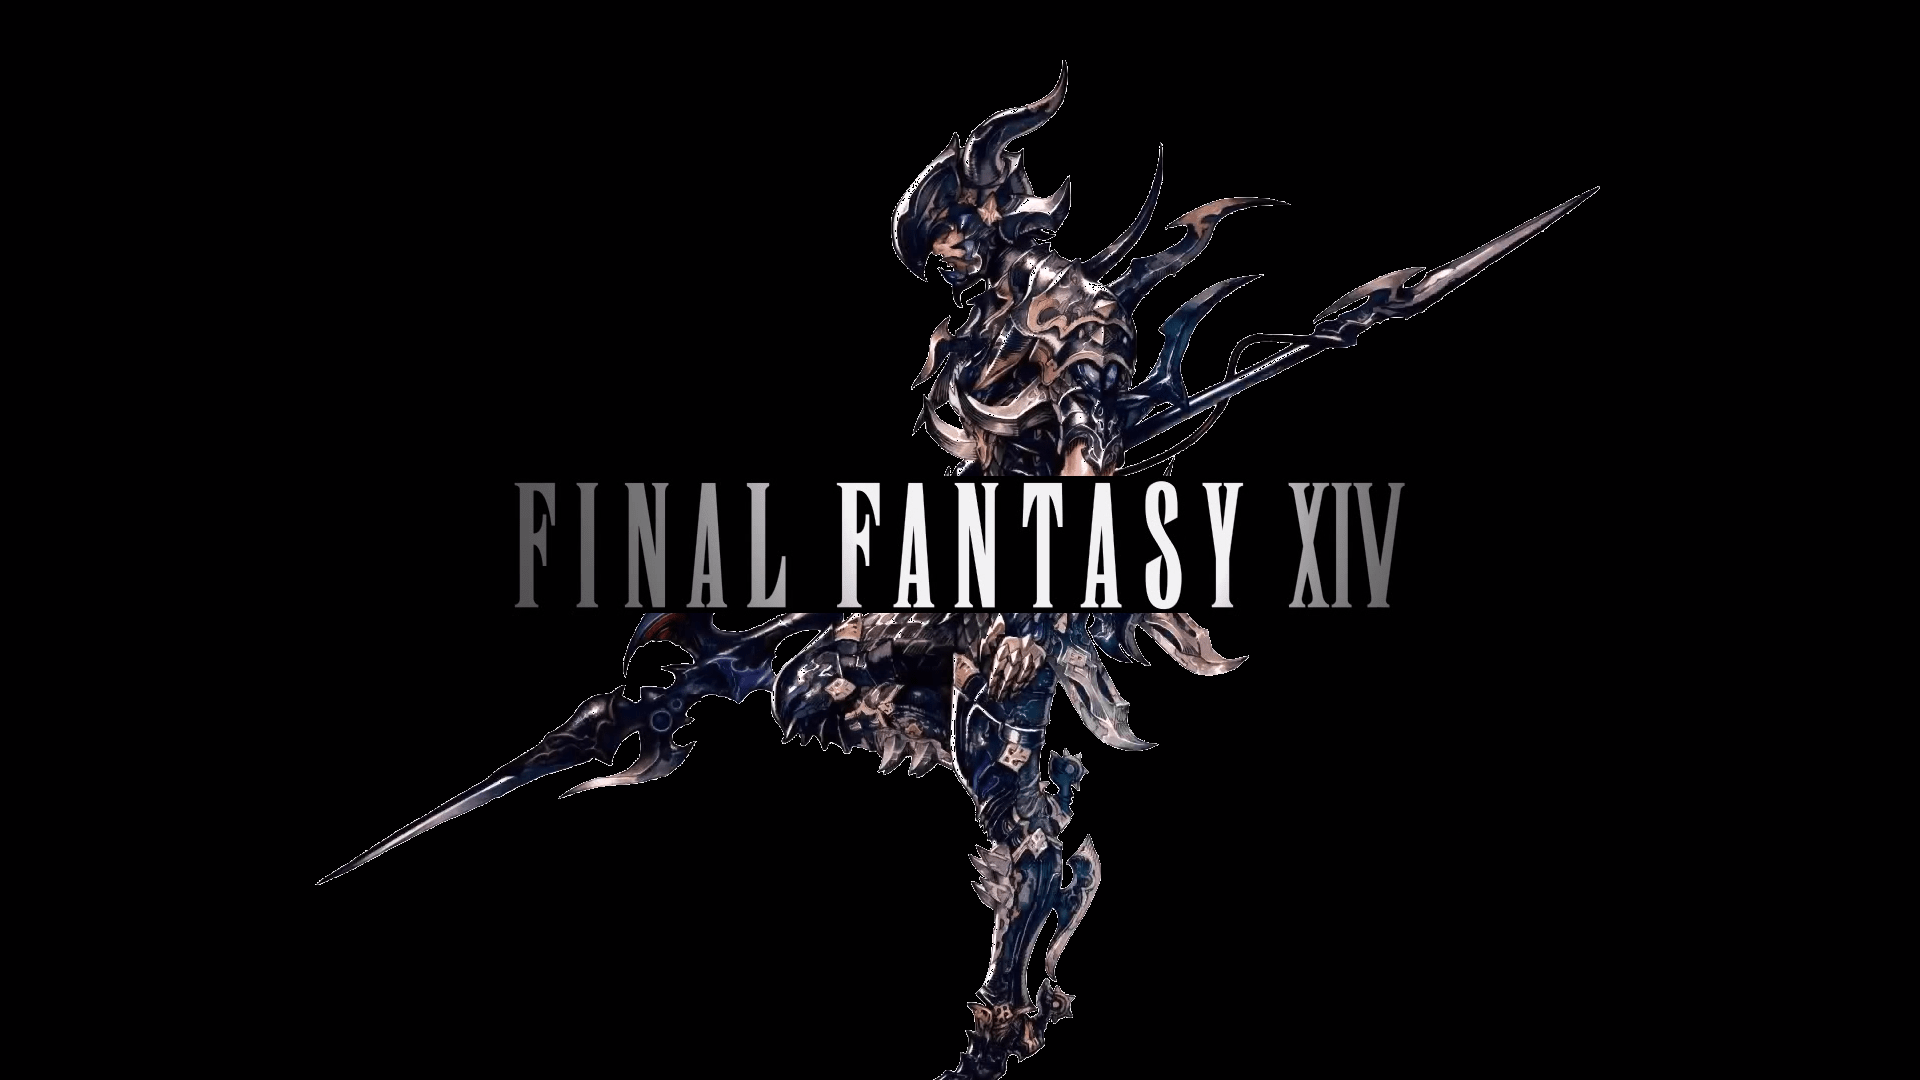 Final Fantasy Xv Iphone Wallpaper Final Fantasy Xiv Wallpapers Pictures Images